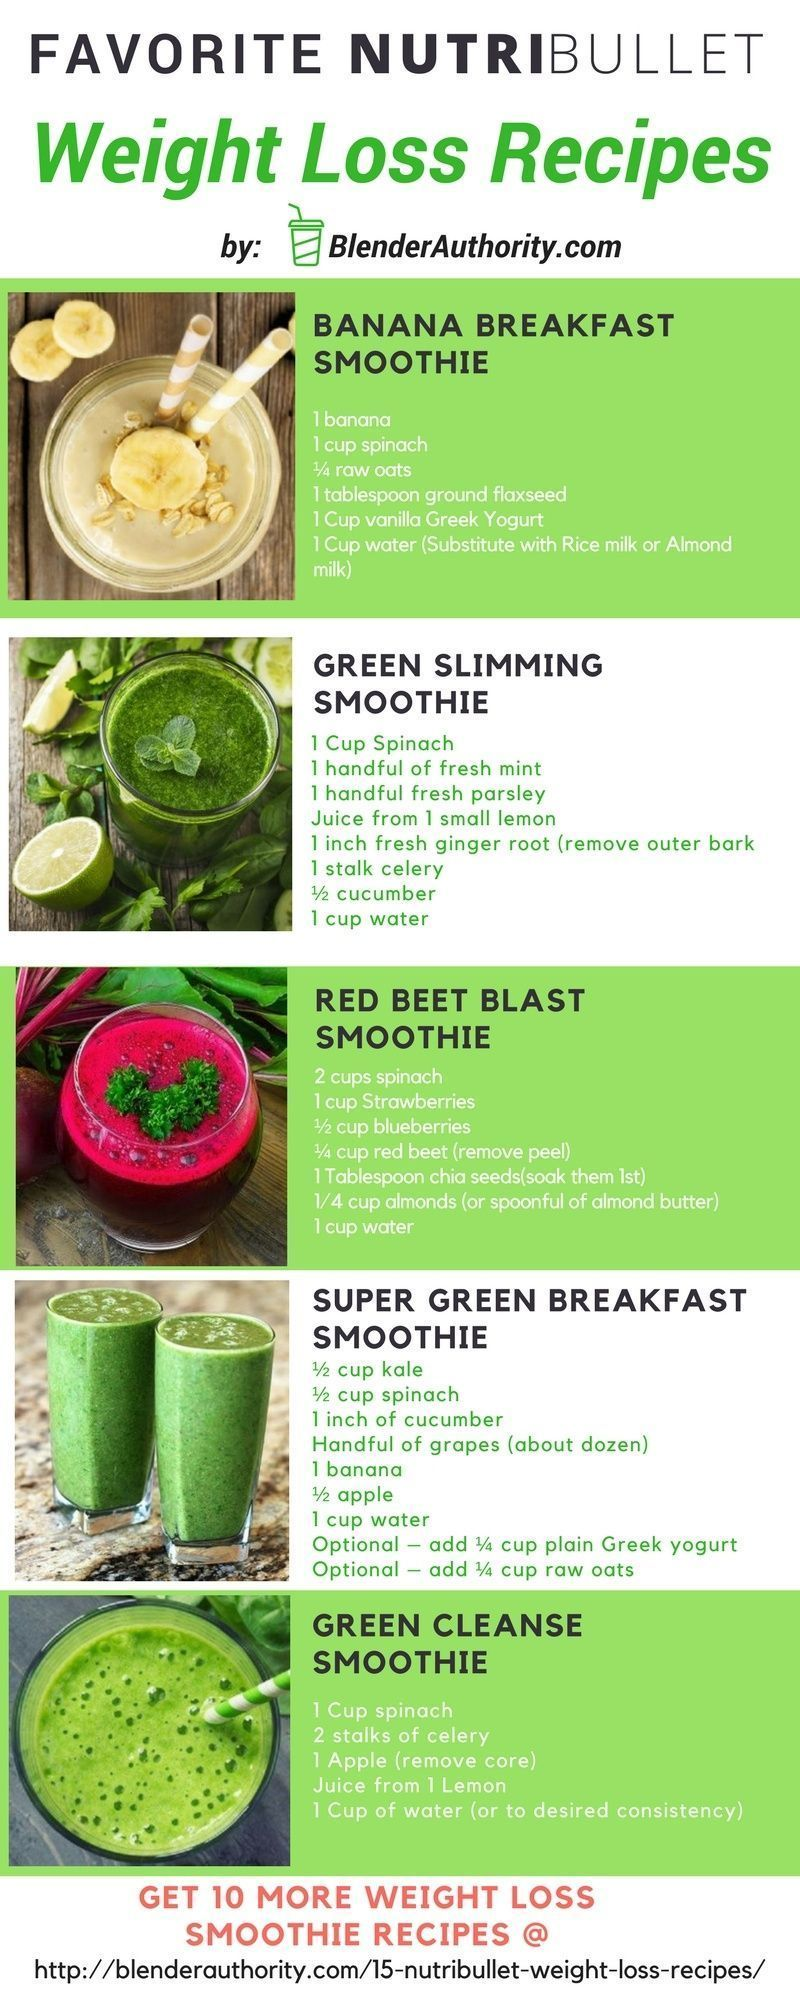 15 Nutribullet Weight Loss Recipes | Health | Weight loss ...